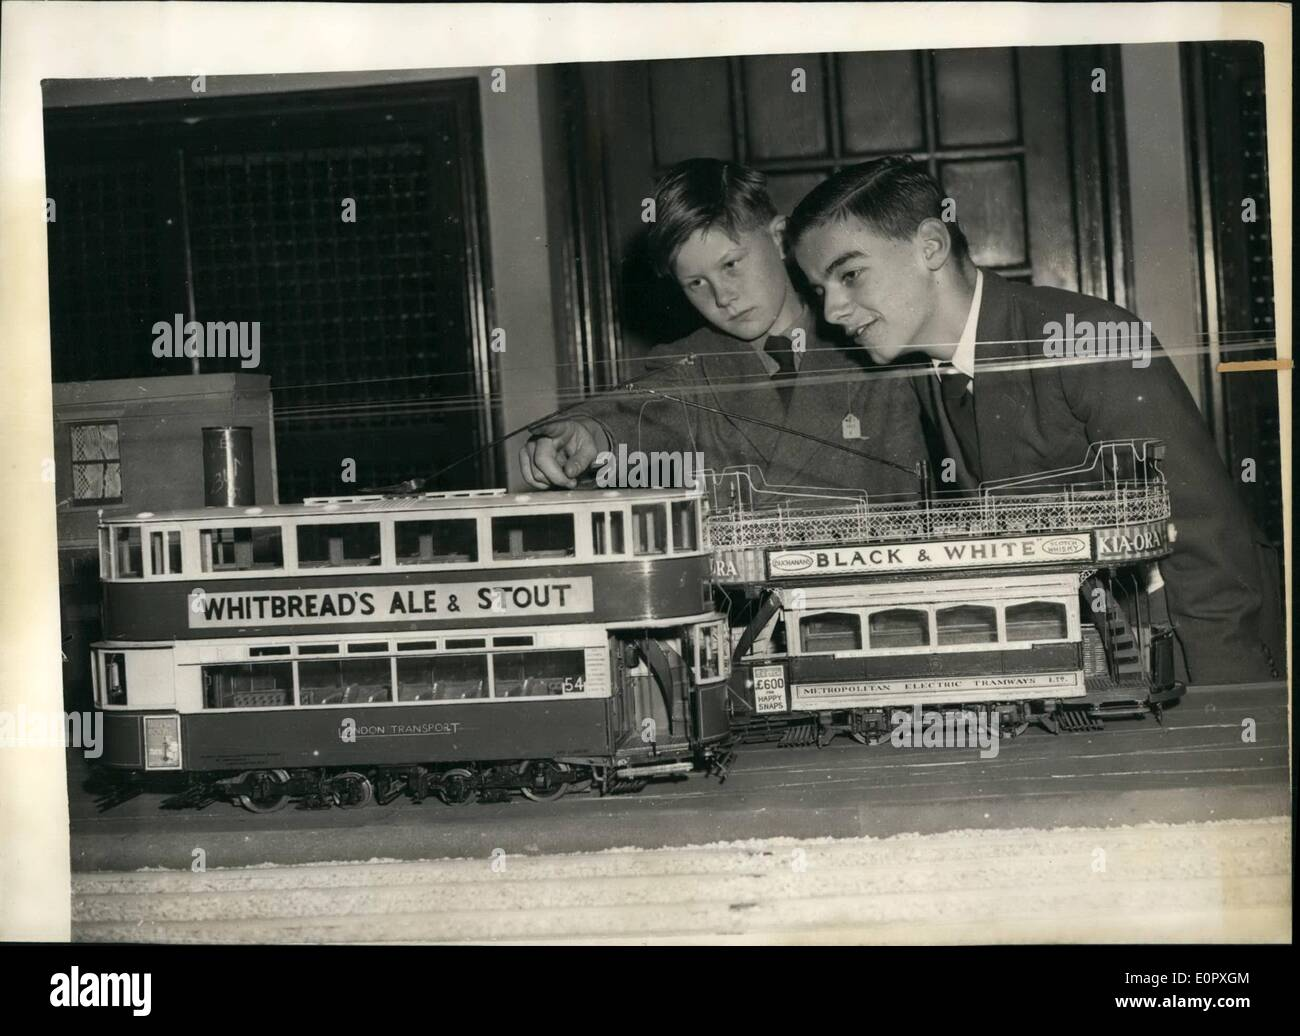 Apr. 04, 1957 - Opening of Model Railway Exhibition Ancient Trams.: Clive Ewen (10) of Crowthorn, Berks - and Reginald Davis (14) of Streatham - admiring models of (left) a London Transport Tram - and on right an ancient Metropolitan Electric Tram - at the Model Railway Exhibition which is being held at Central Hall, Westminster. - Stock Image